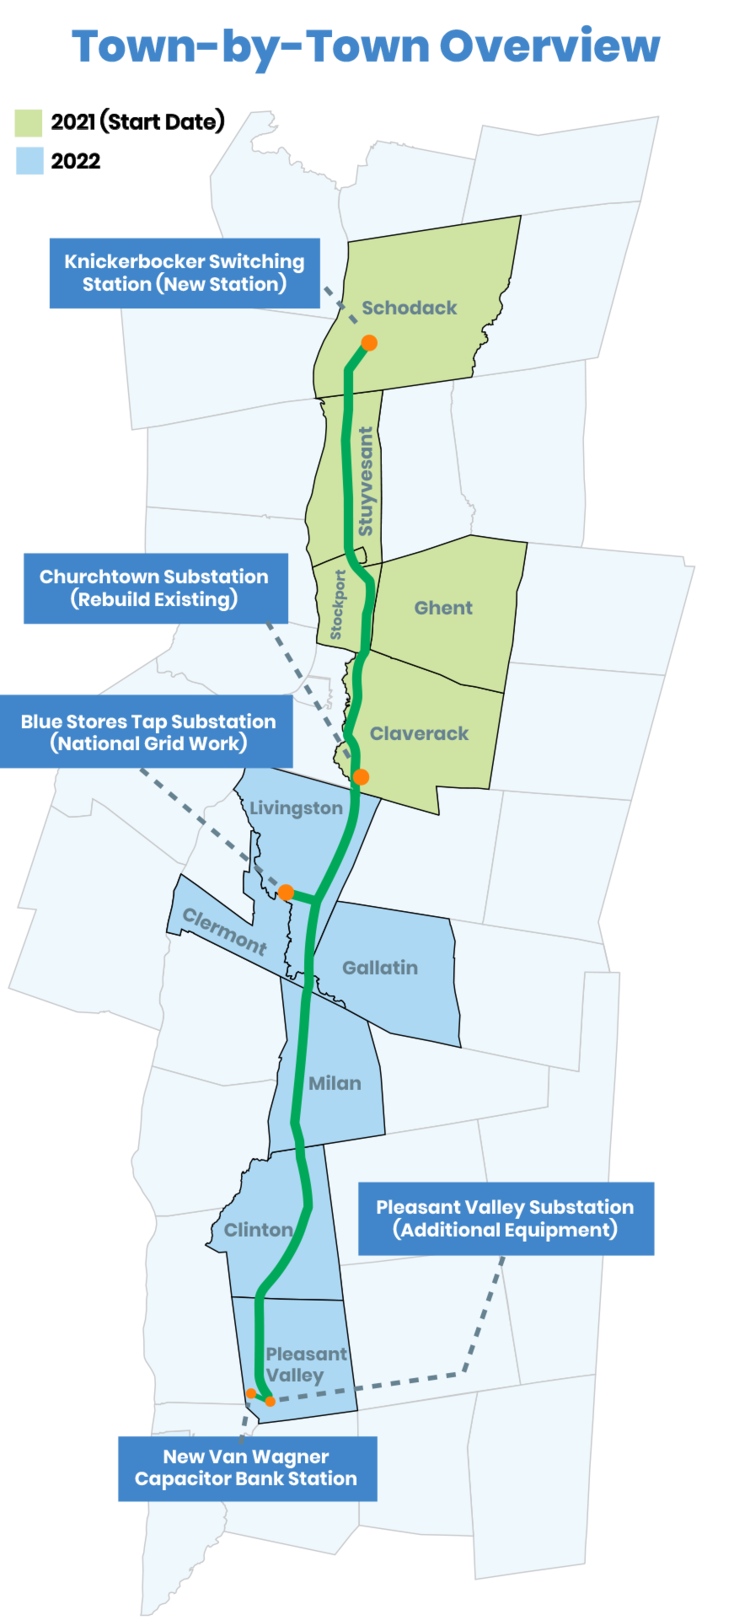 Map shows the path Transco's New York Energy Solution transmission project will take to deliver renewable energy from upstate New York to the lower Hudson Valley and New York City.